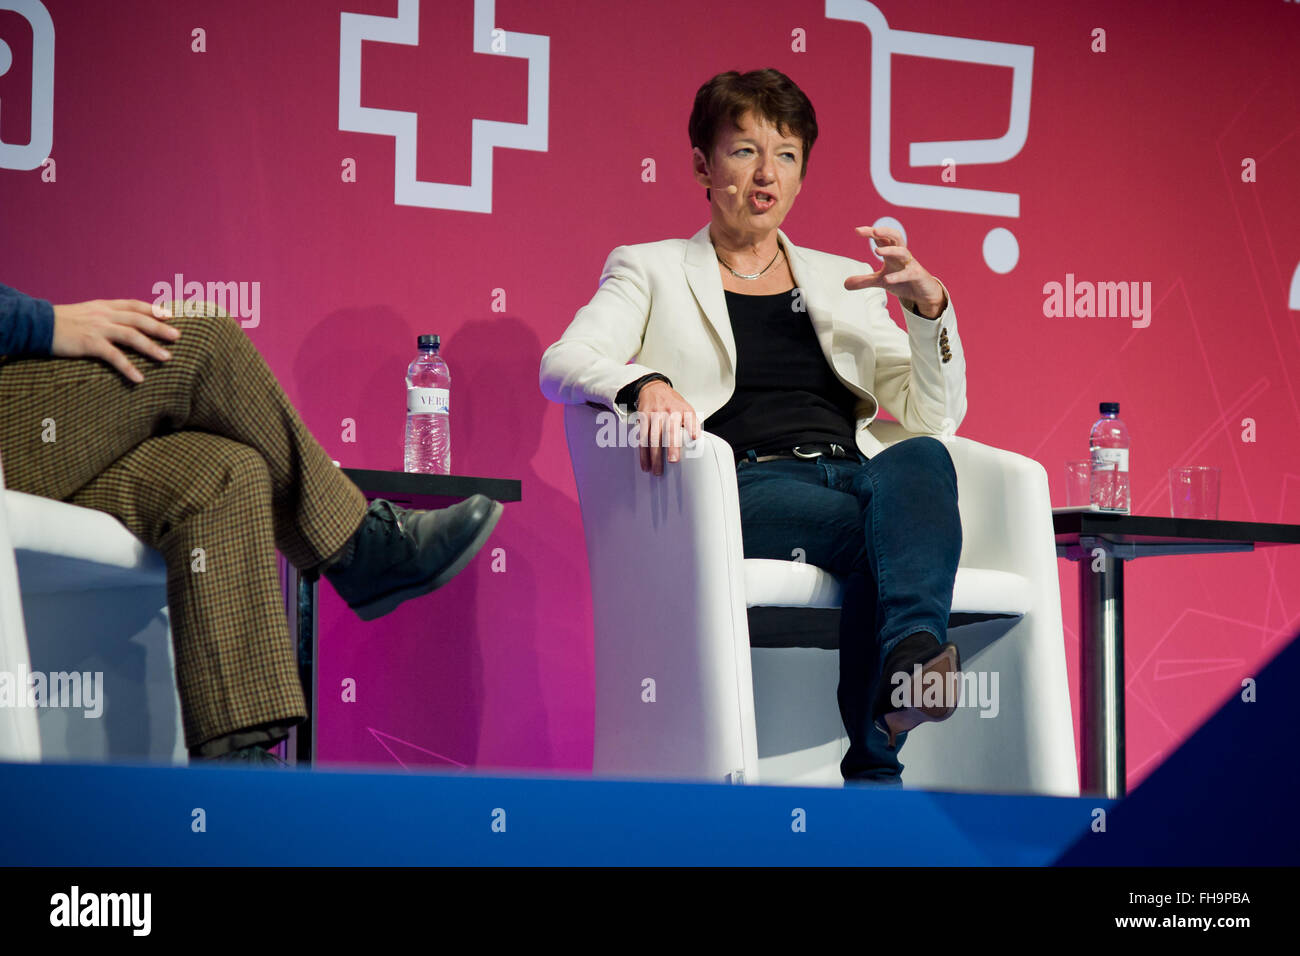 Barcelona, Catalonia, Spain. 24th Feb, 2016. CEO of Getty Images Dawn Airey speaks during a conference about Mobile - Stock Image